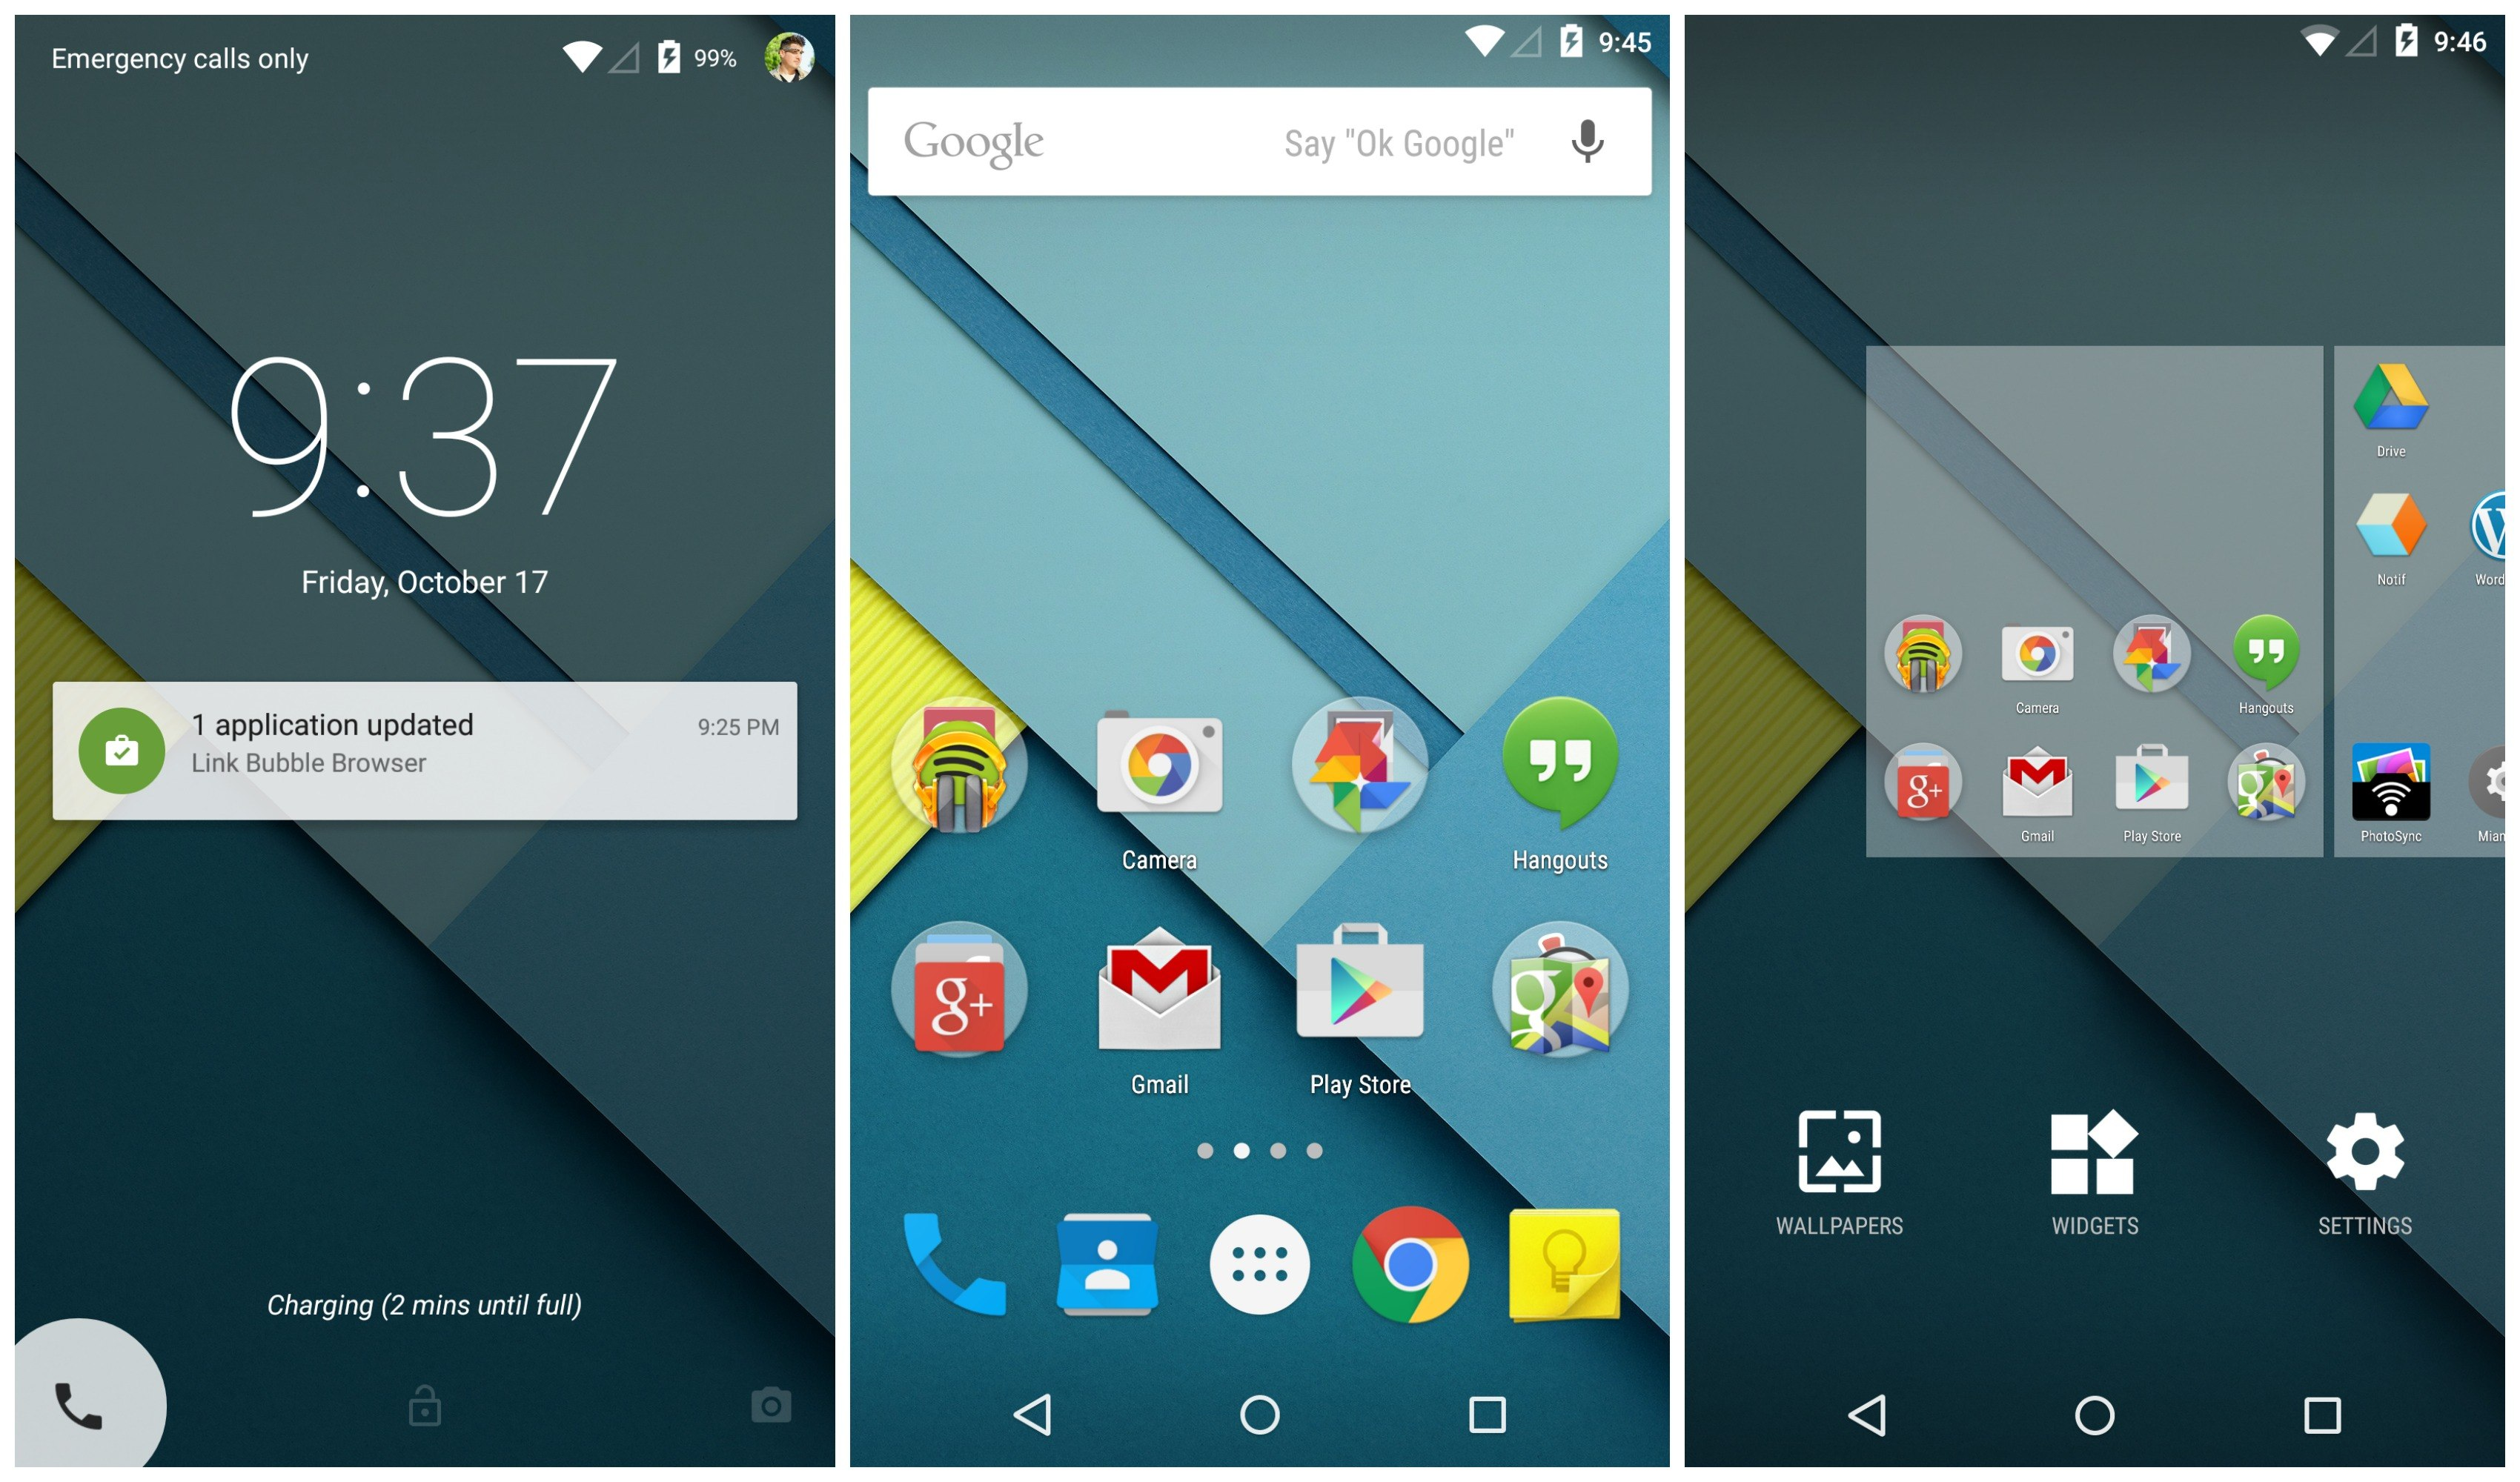 Android-5.0-Lollipop-homescreen